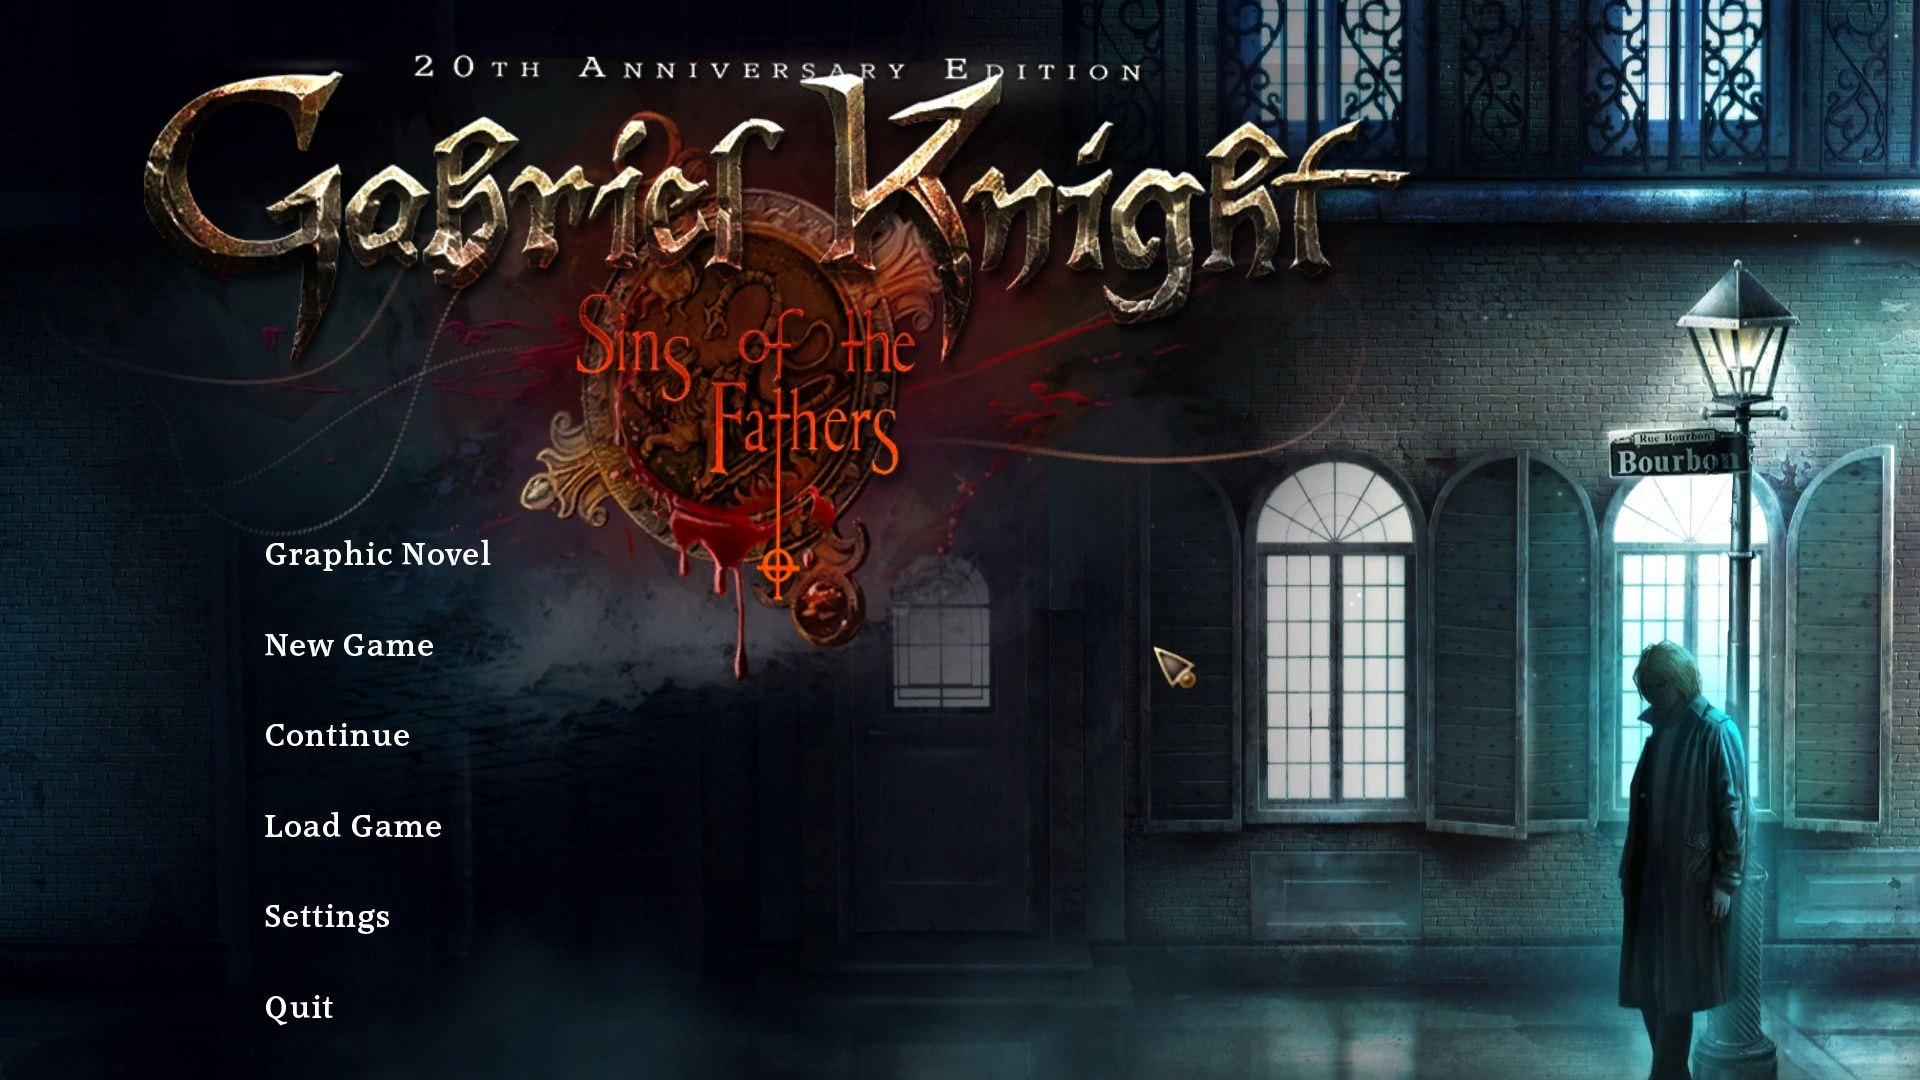 Gabriel Knight: Sins of the Fathers - 20th Anniversary Edition Windows Main menu.